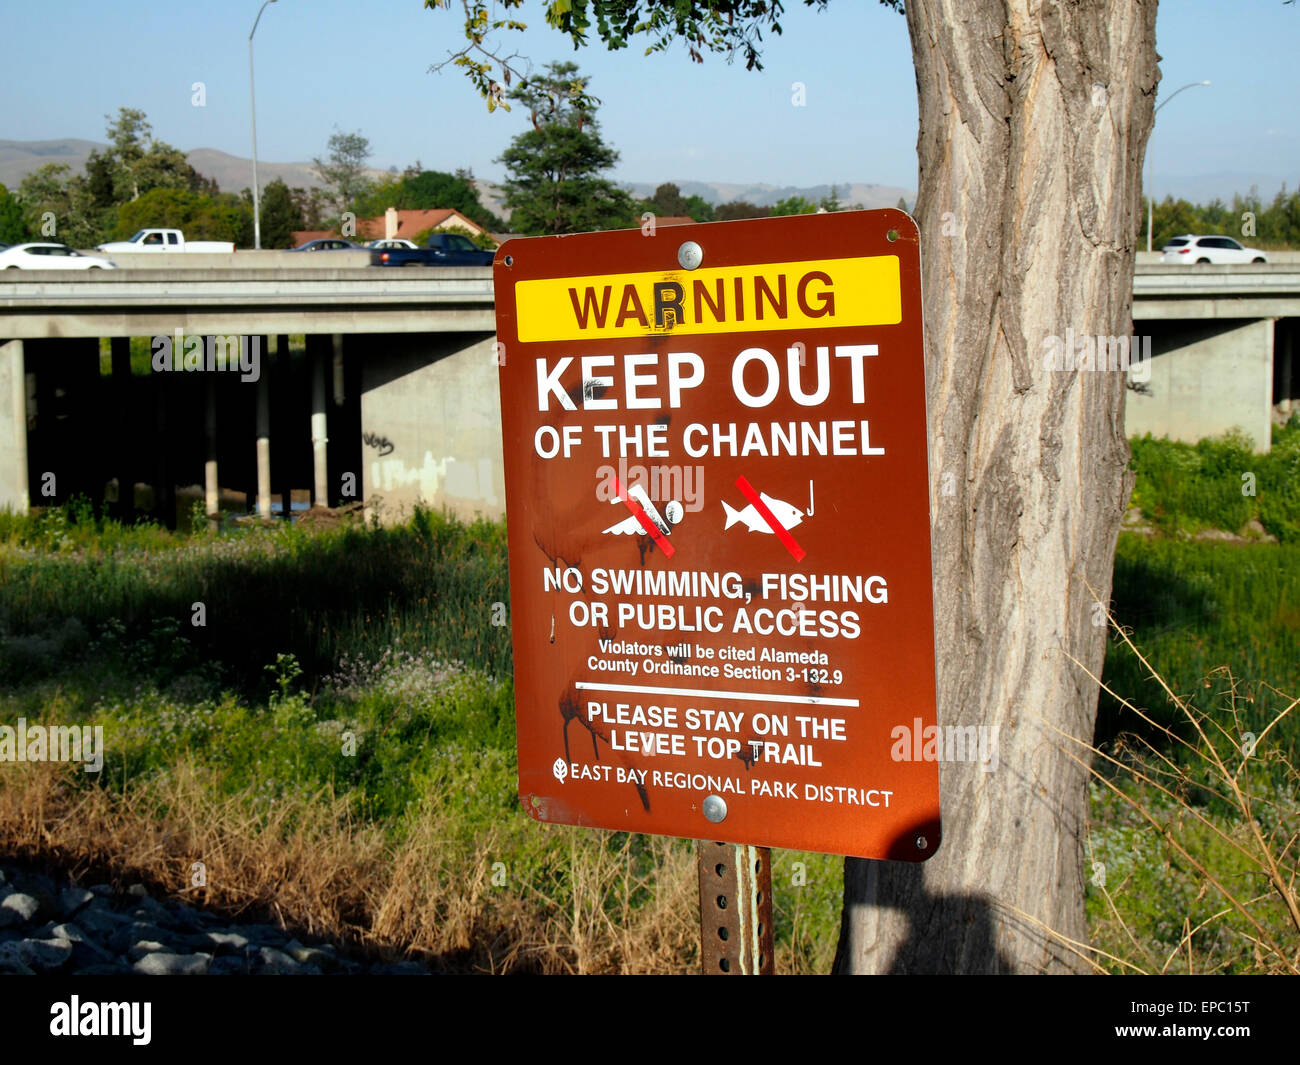 Warning sign, Alameda Creek Regional Trail, Union City, CA USA - Stock Image